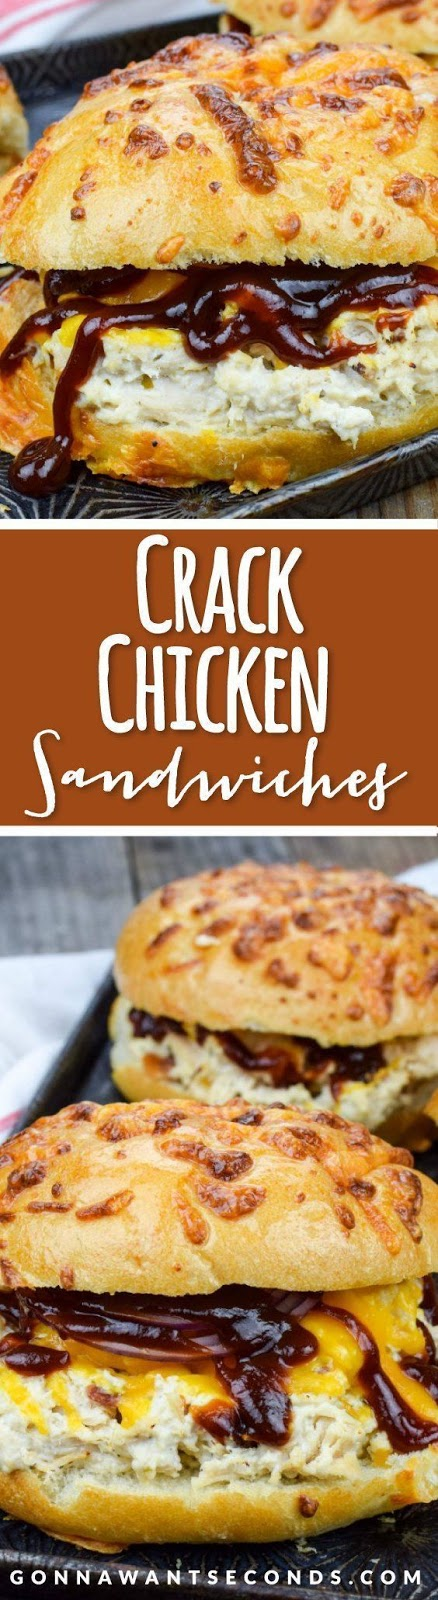 CRACK CHICKEN SANDWICHES